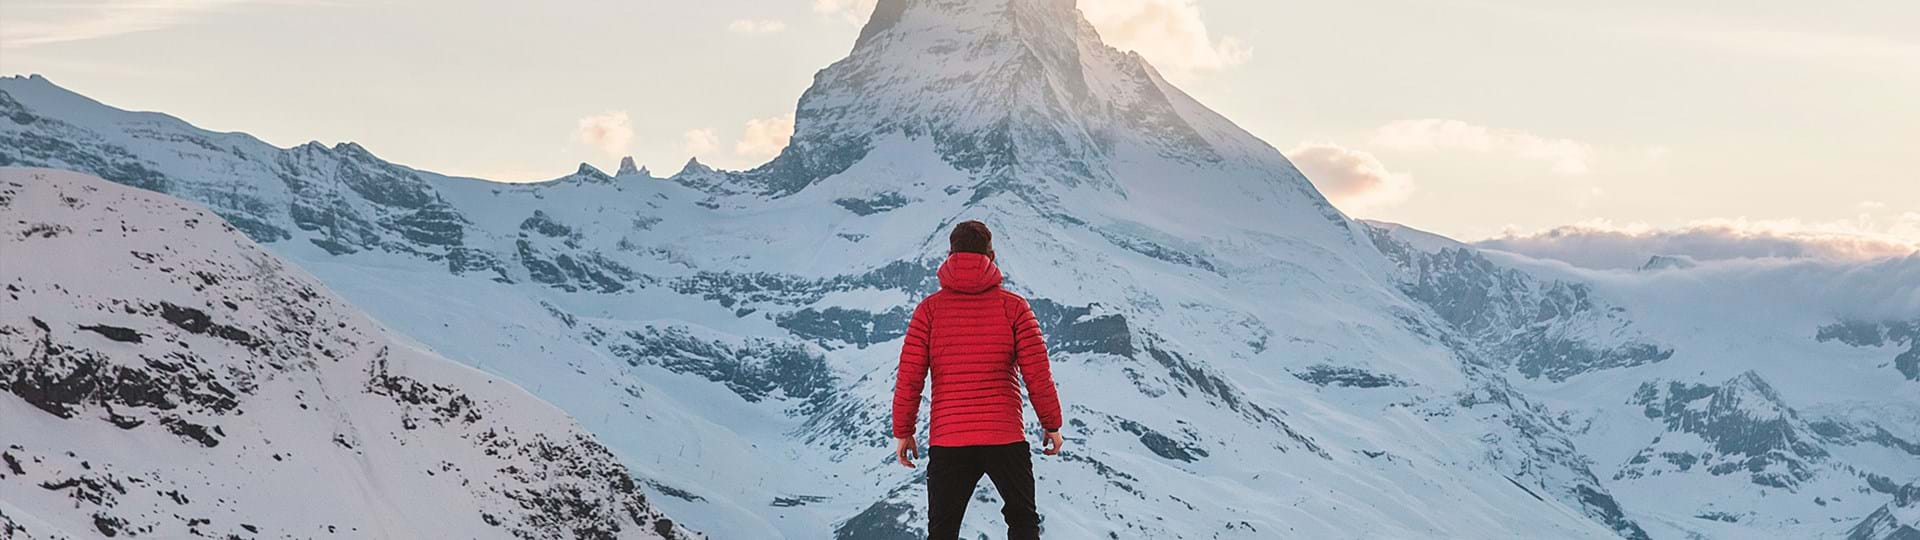 Man standing on snowy mountain